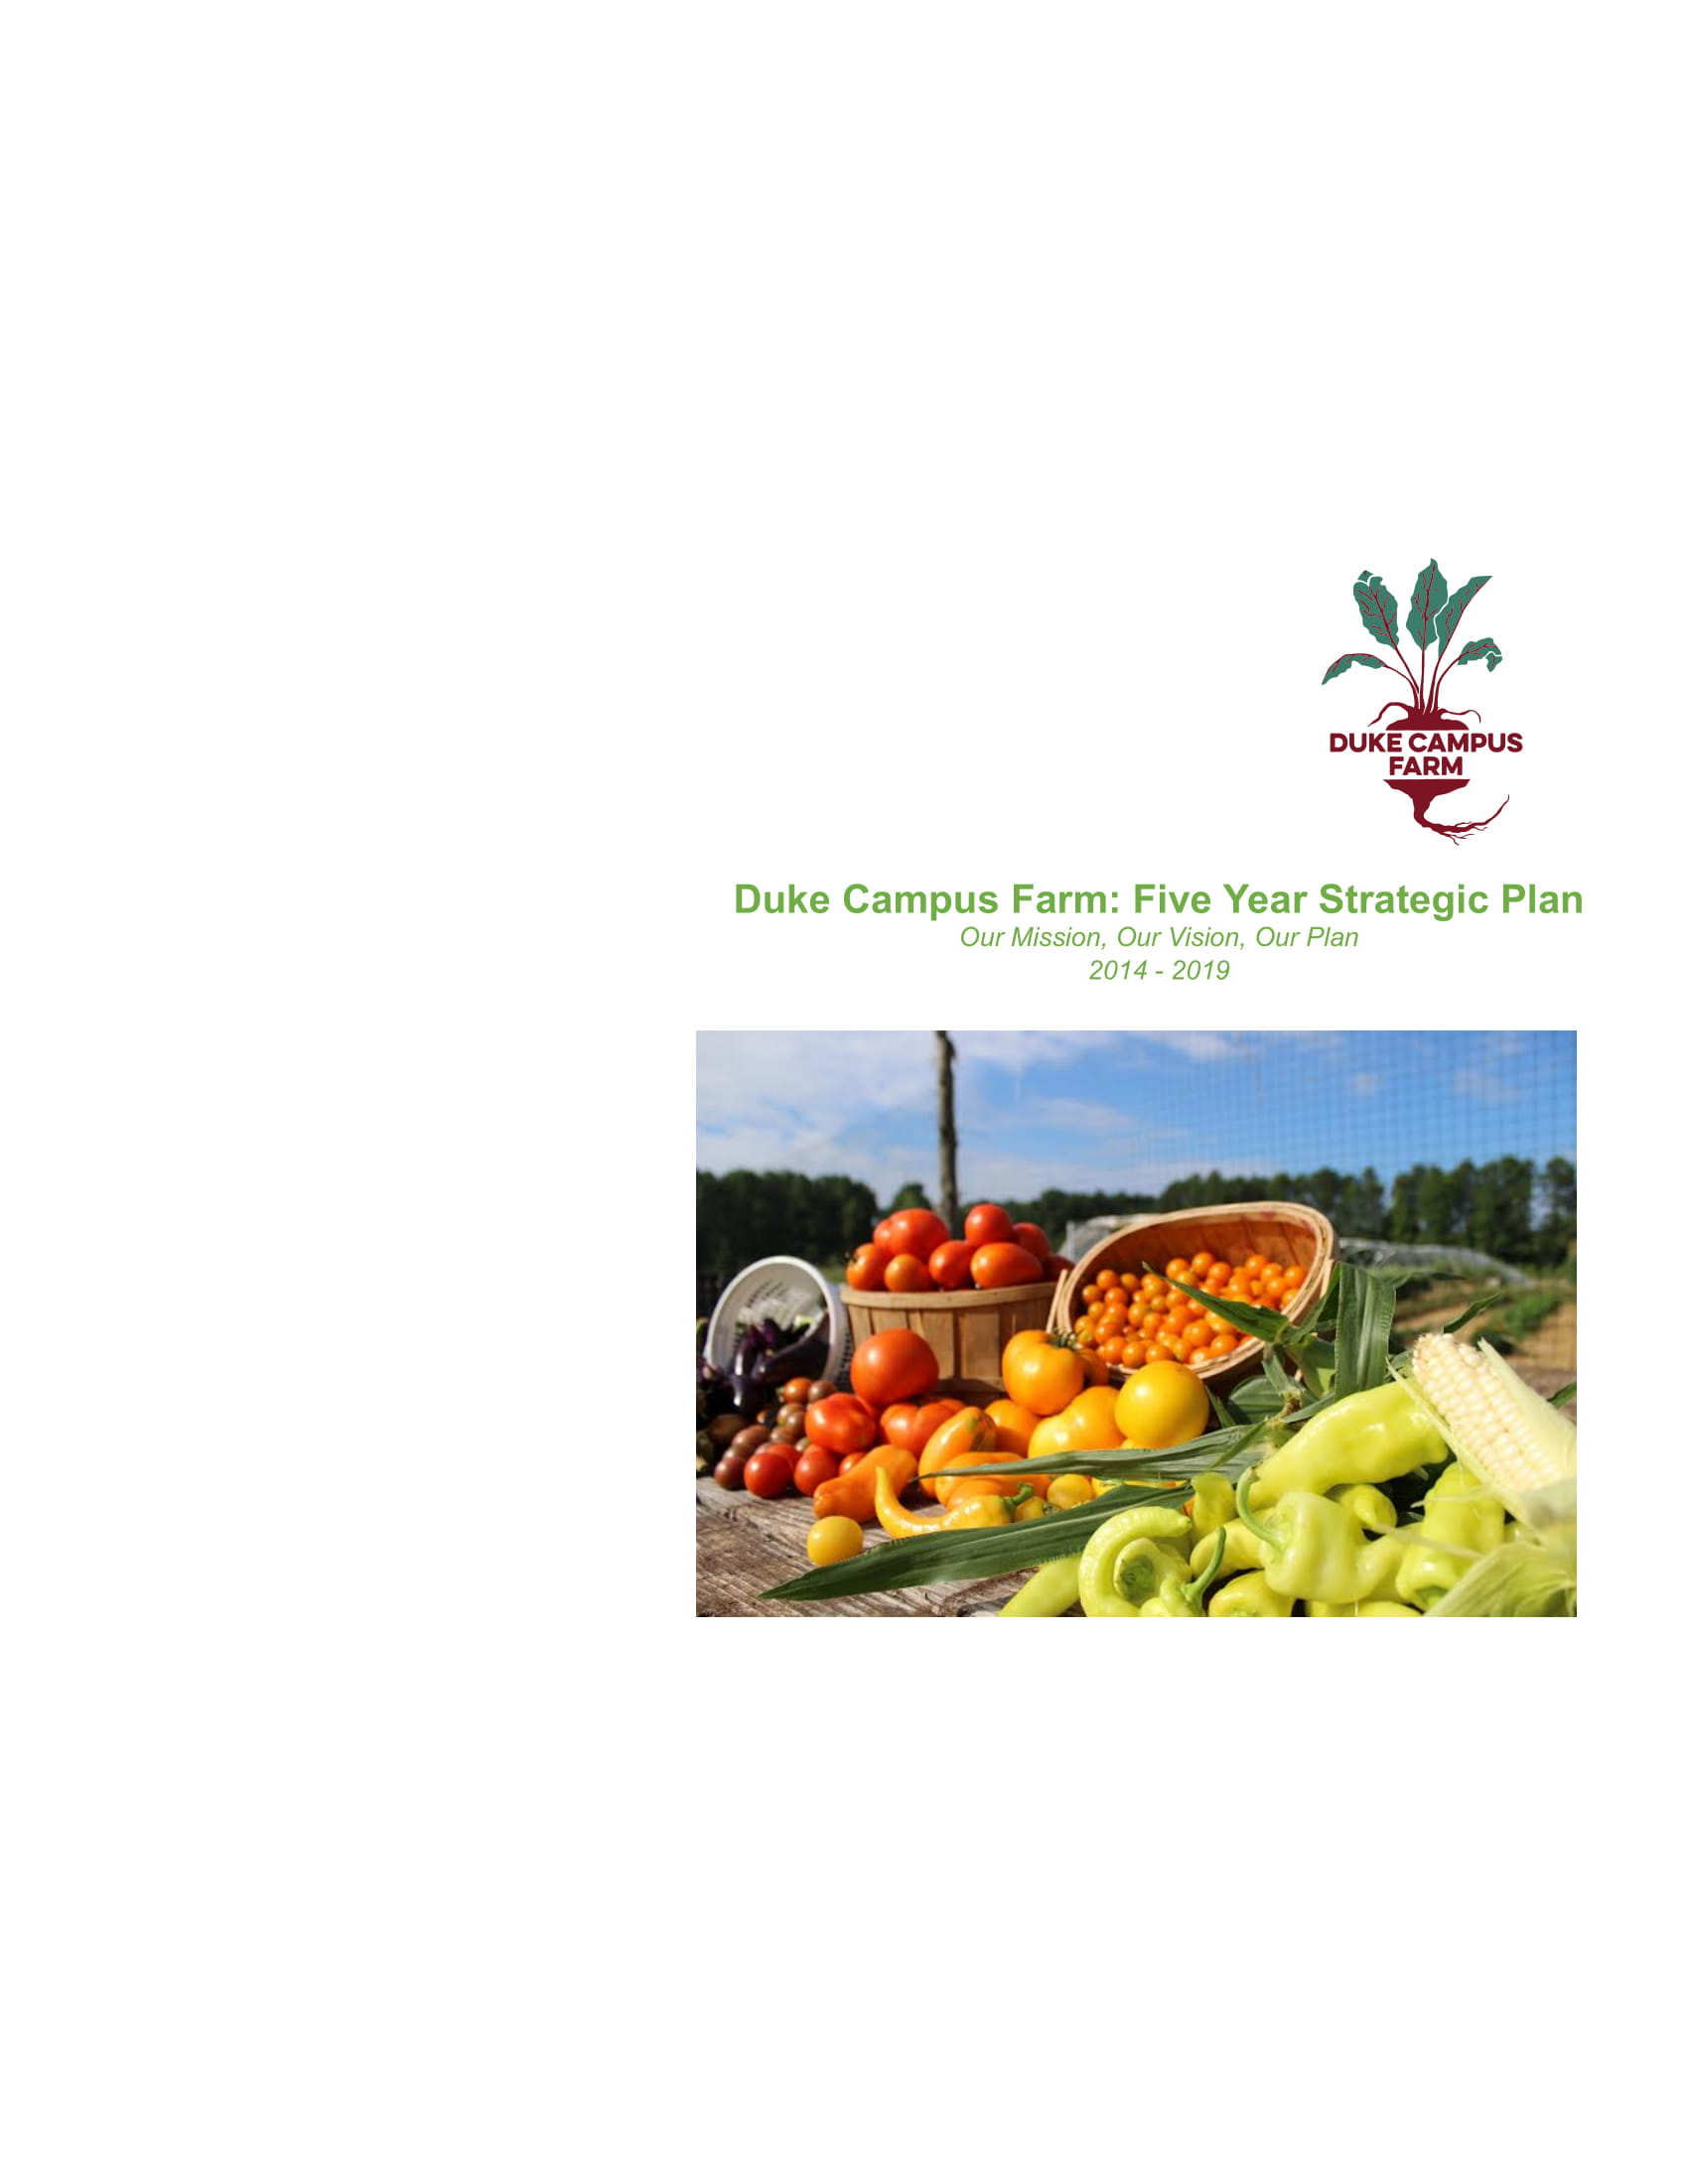 campus farm 5 year strategic plan example 01